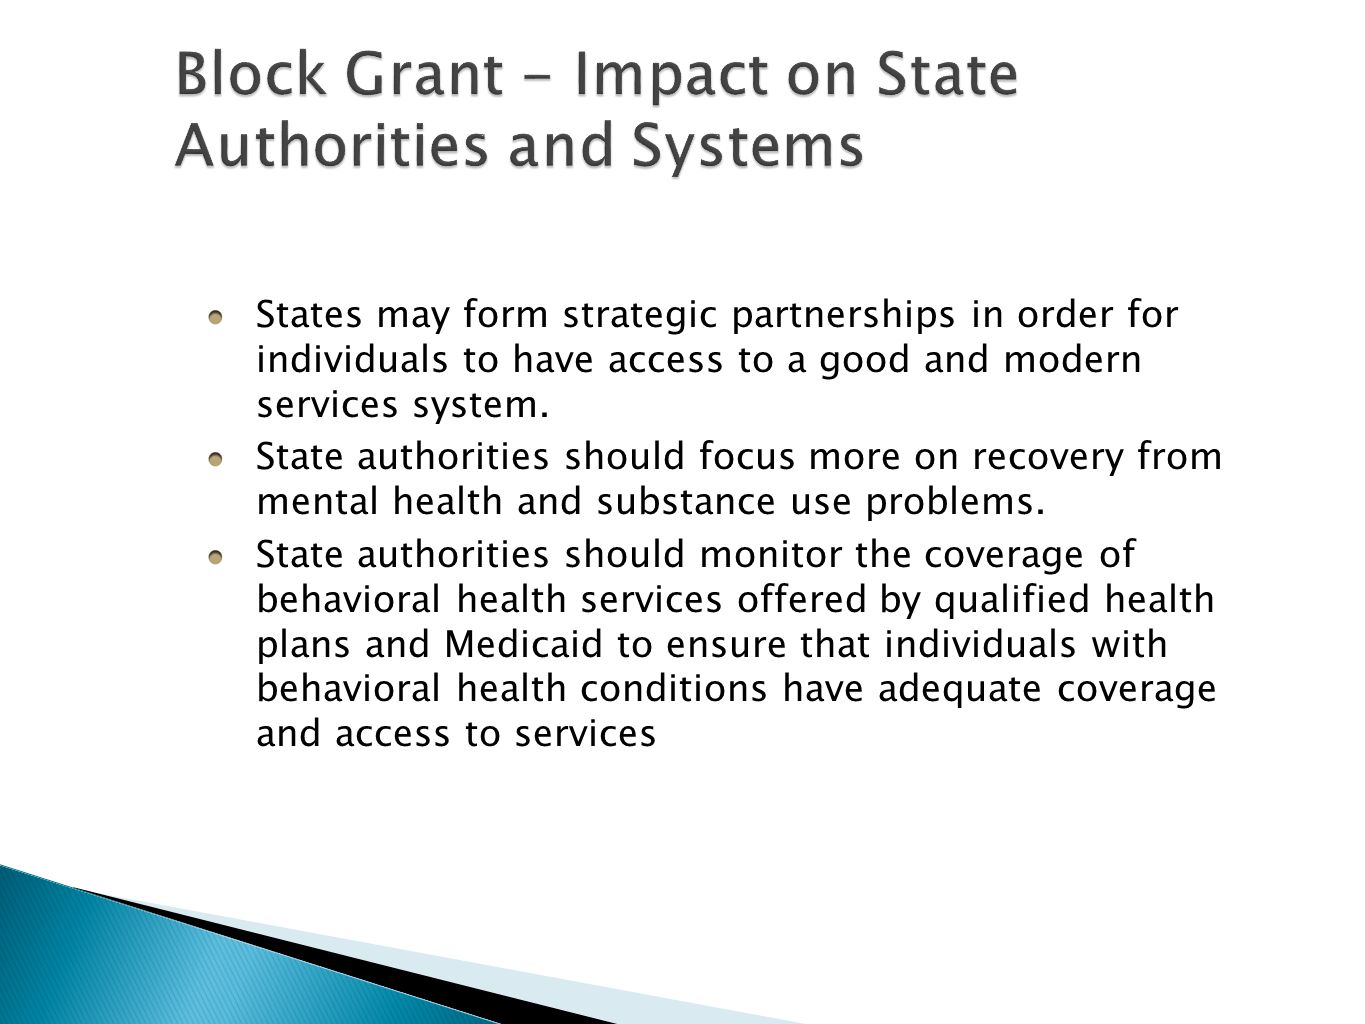 States may form strategic partnerships in order for individuals to have access to a good and modern services system.